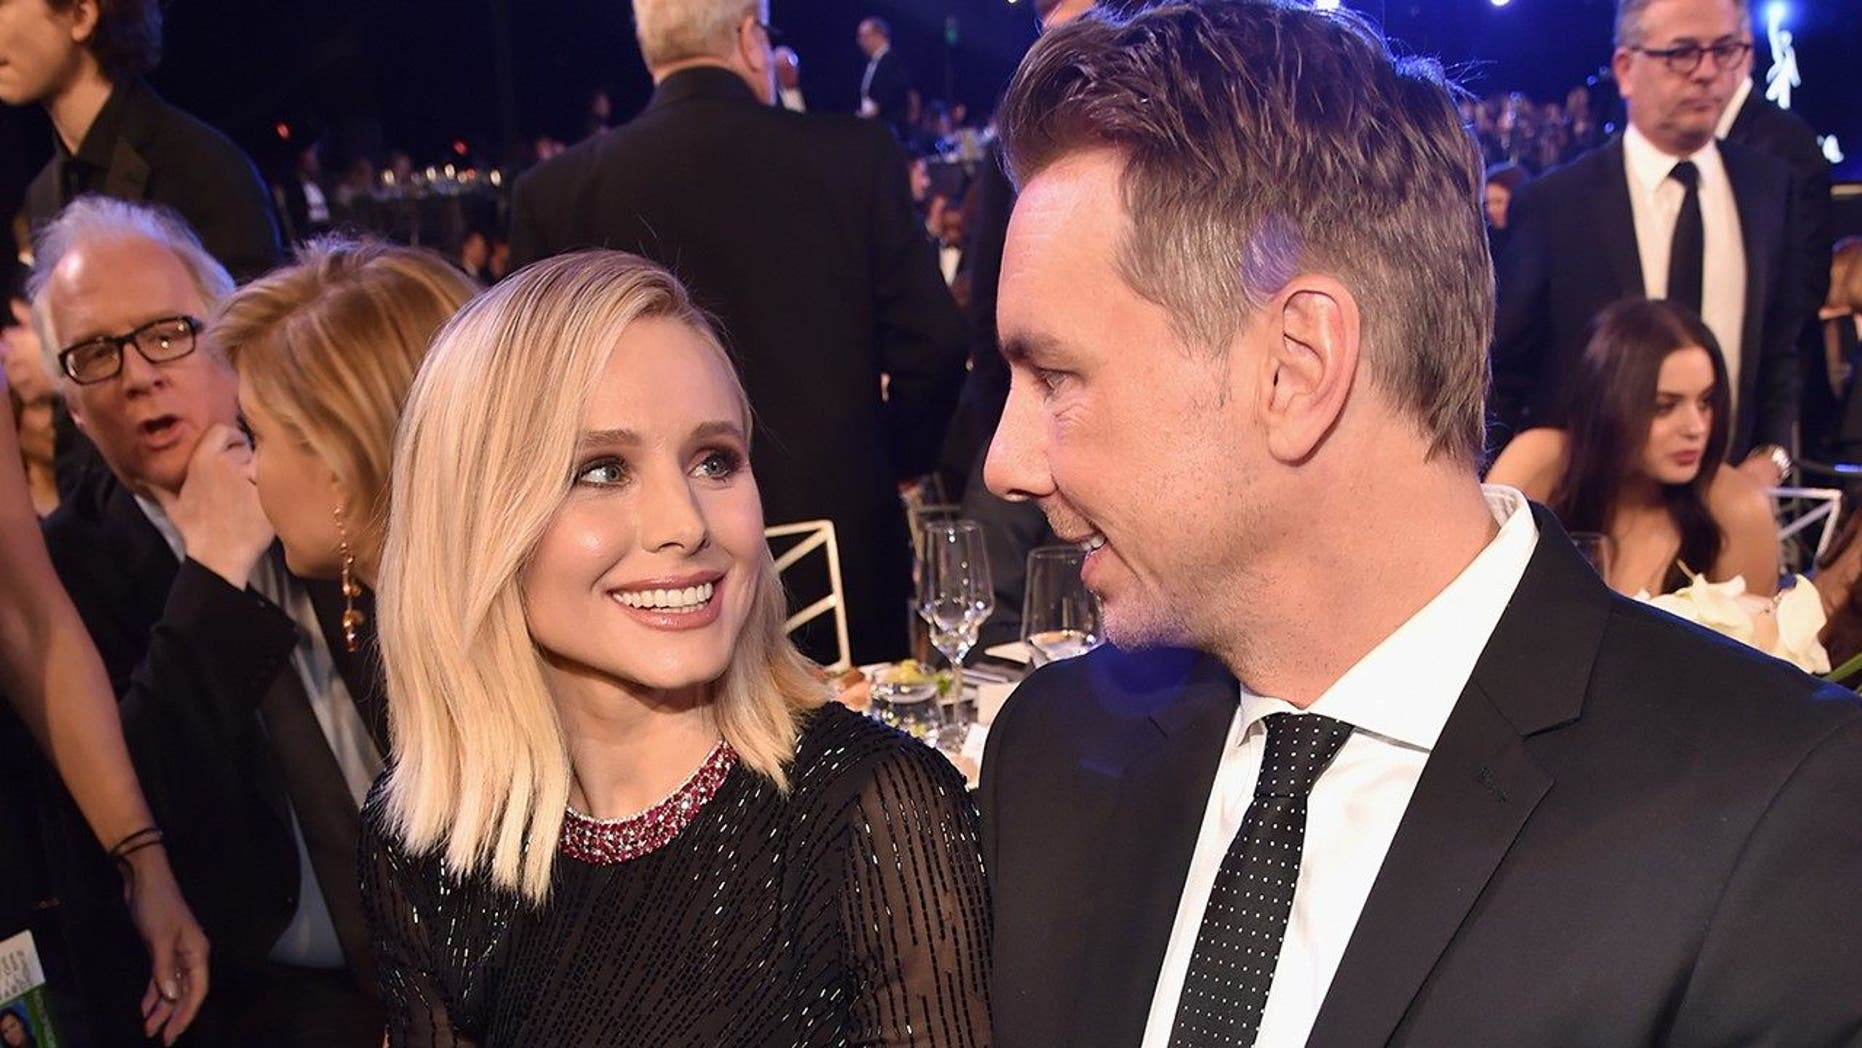 Dax Shepard went on Instagram on Thursday to shut down a claim that he cheated on Kristen Bell.